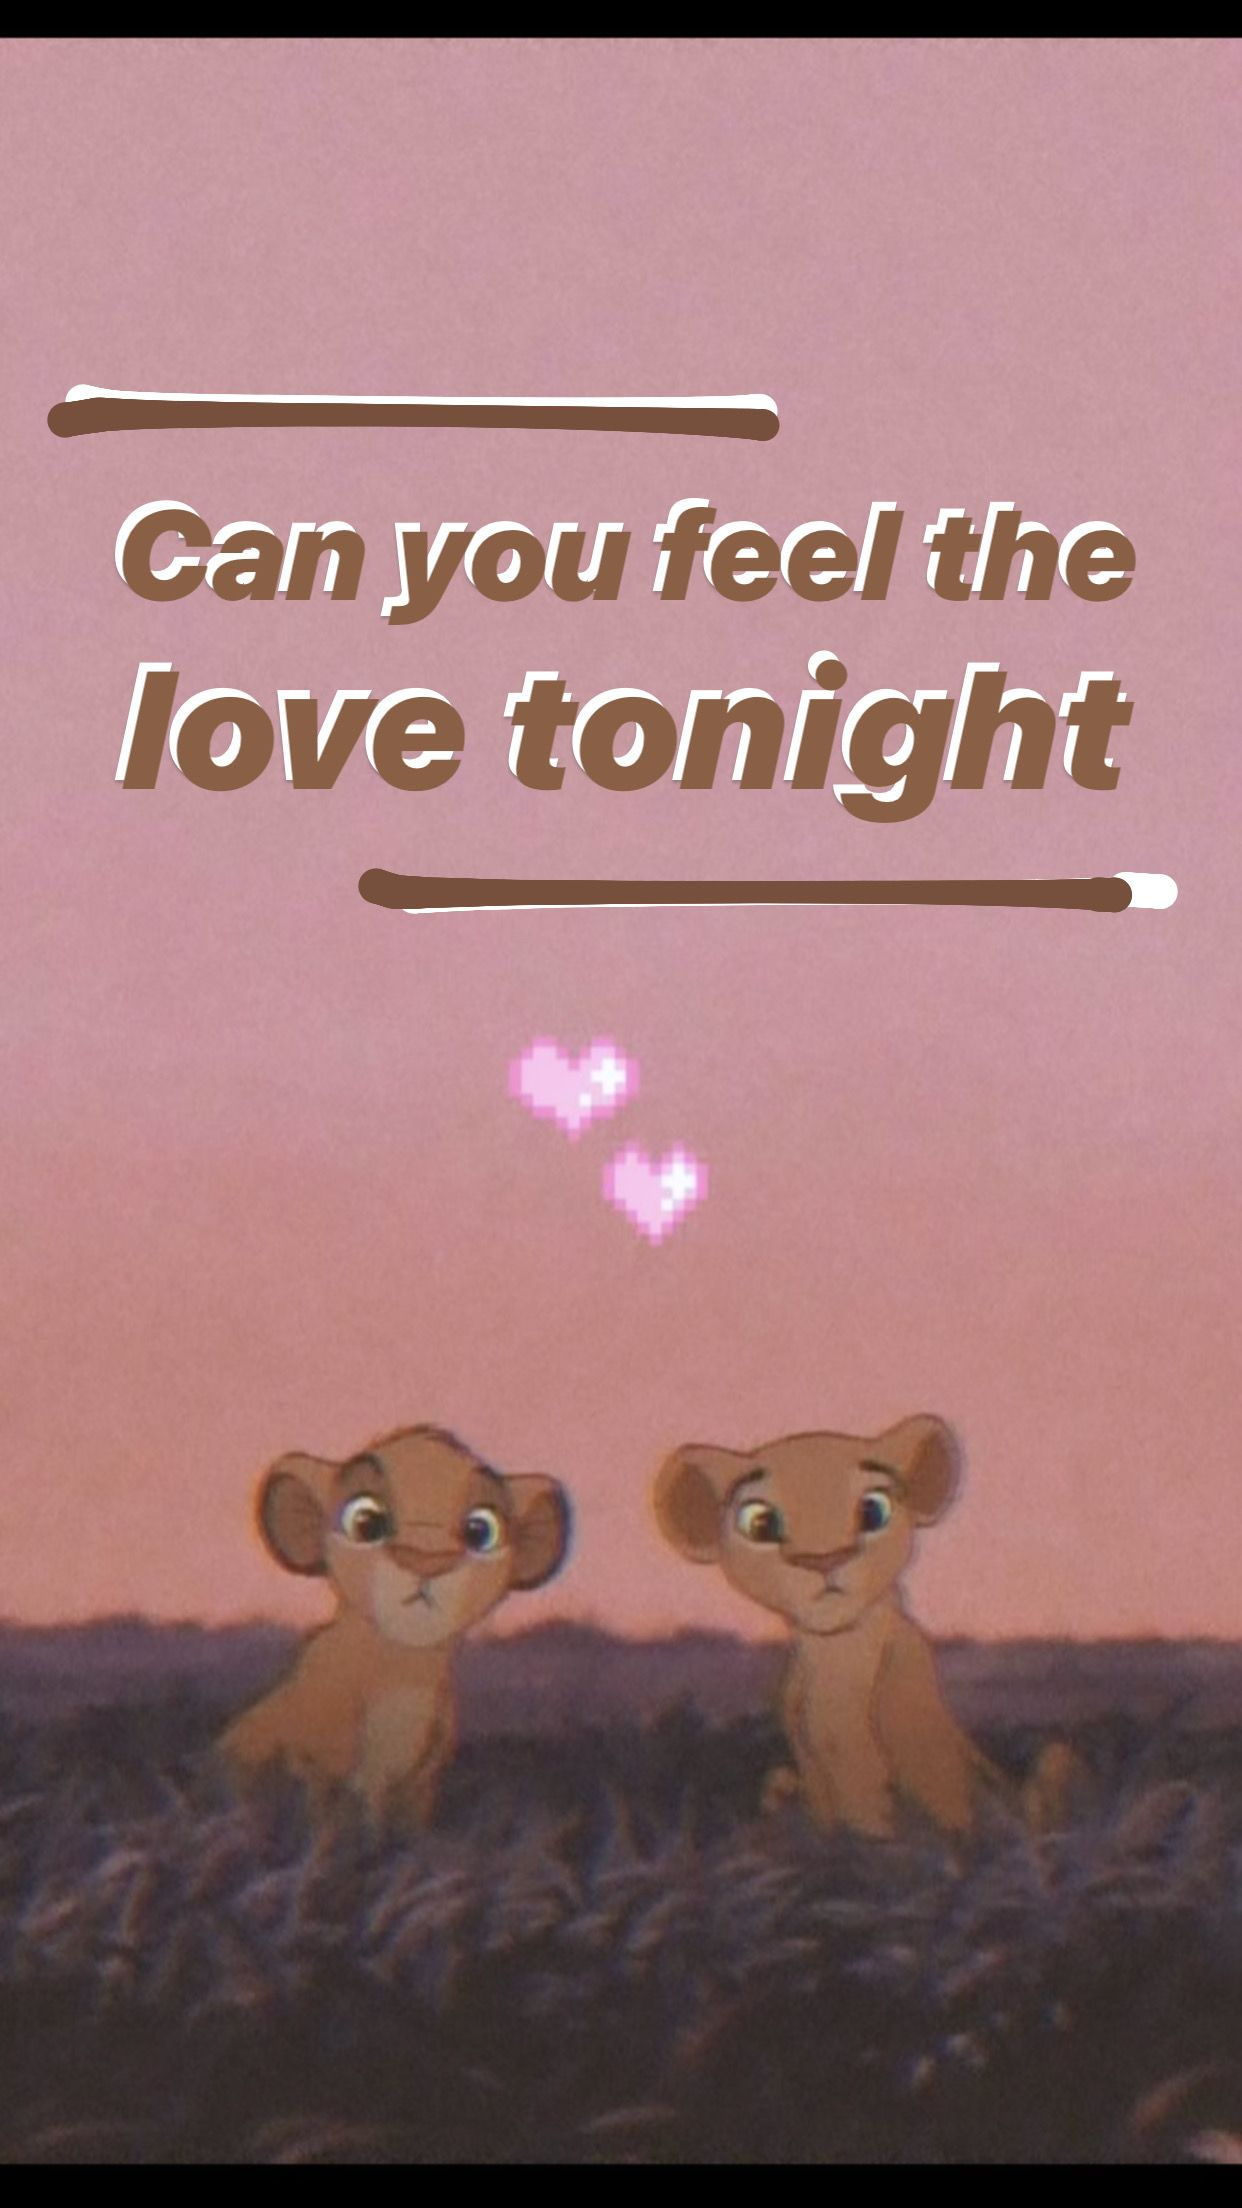 Can You Feel The Love Tonight Cute Disney Wallpaper Aesthetic Lion King Sassy Wallpaper Disney Quote Wallpaper